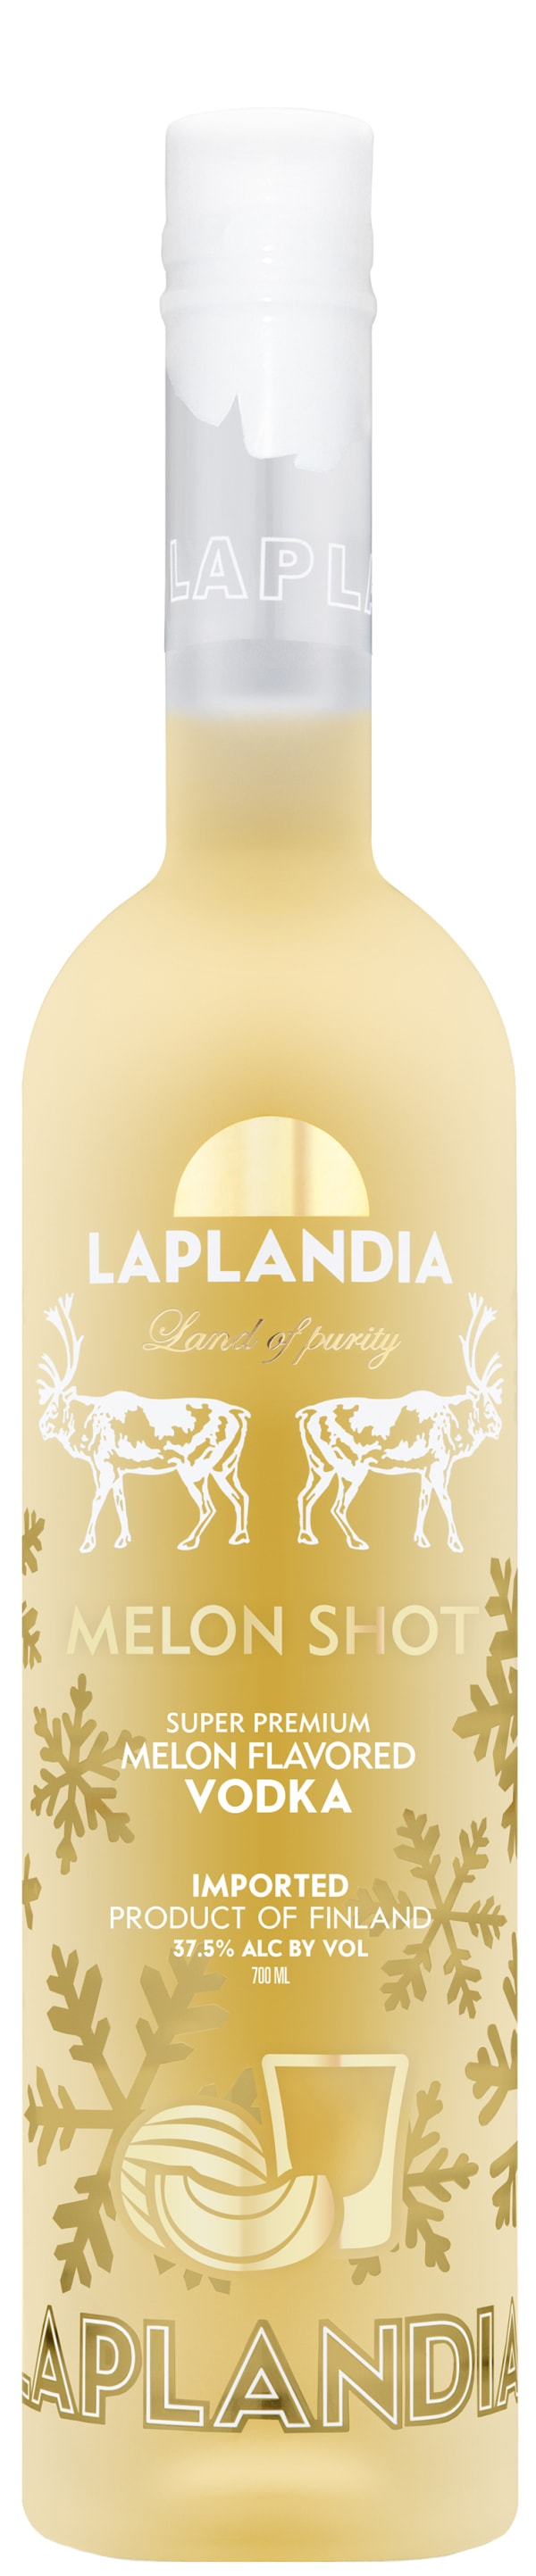 Laplandia Melon Shot Vodka